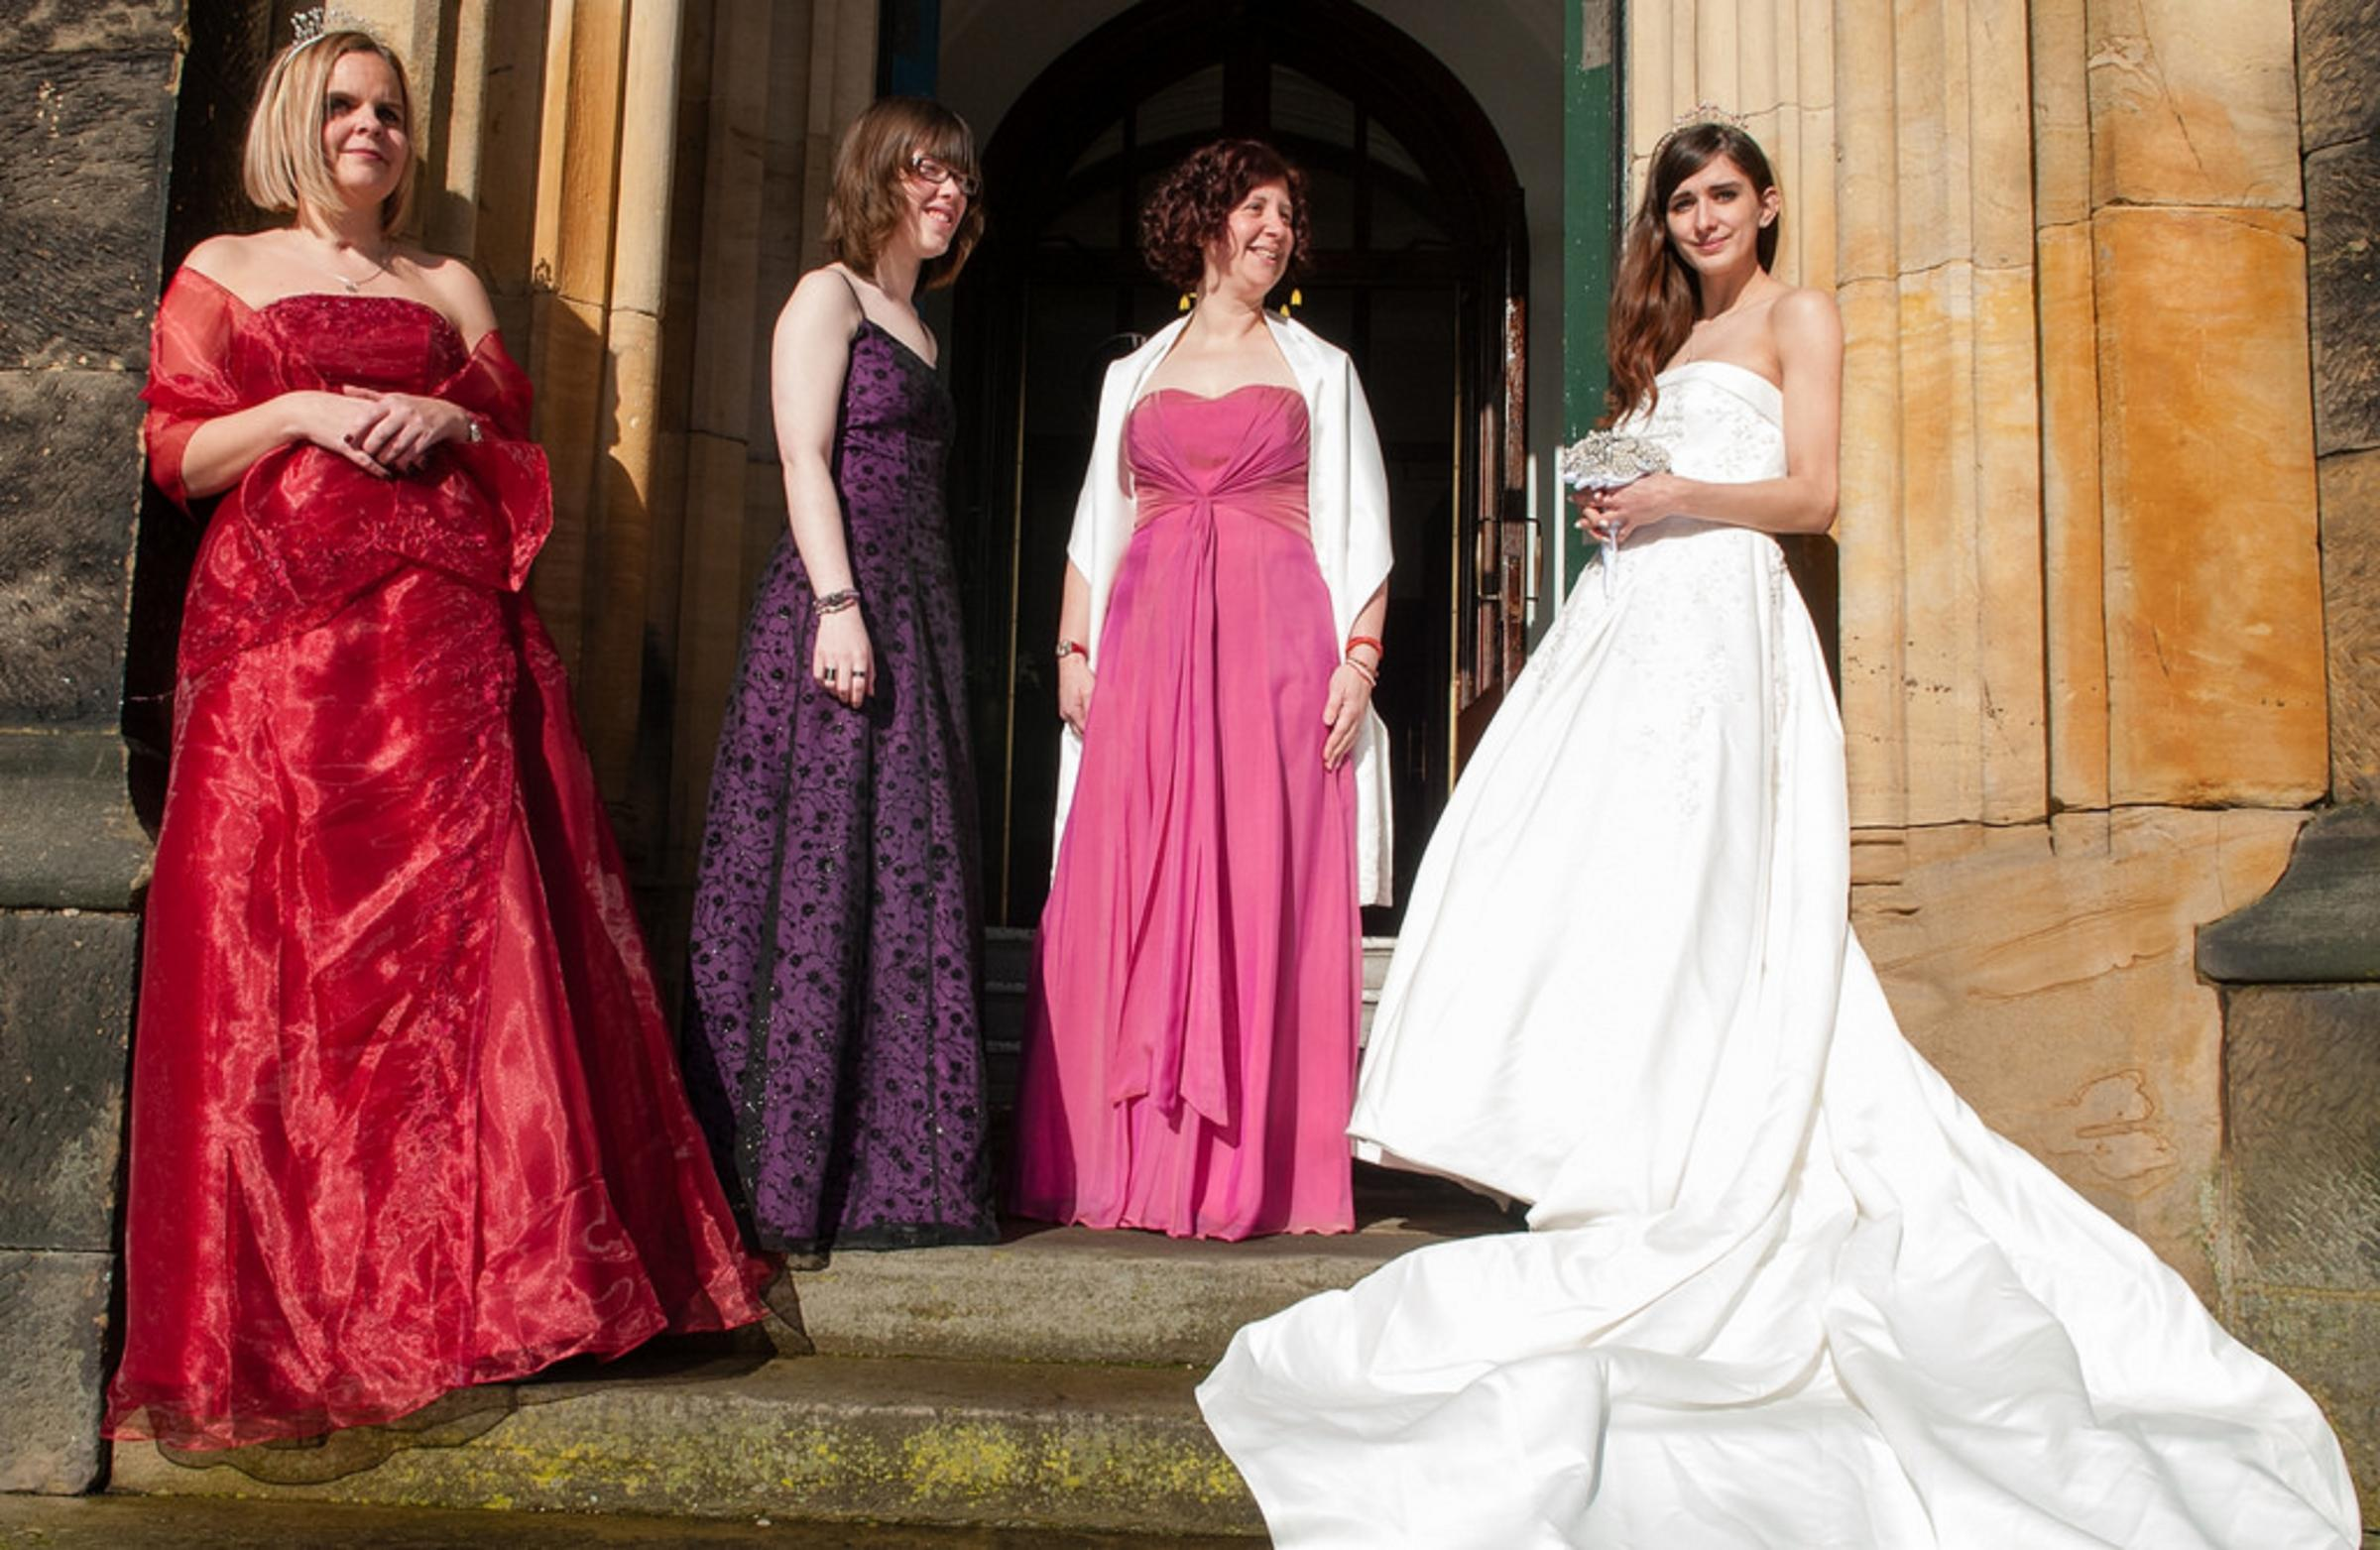 Modelling some of the wedding outfits for sale, left to right - Kerry Payne